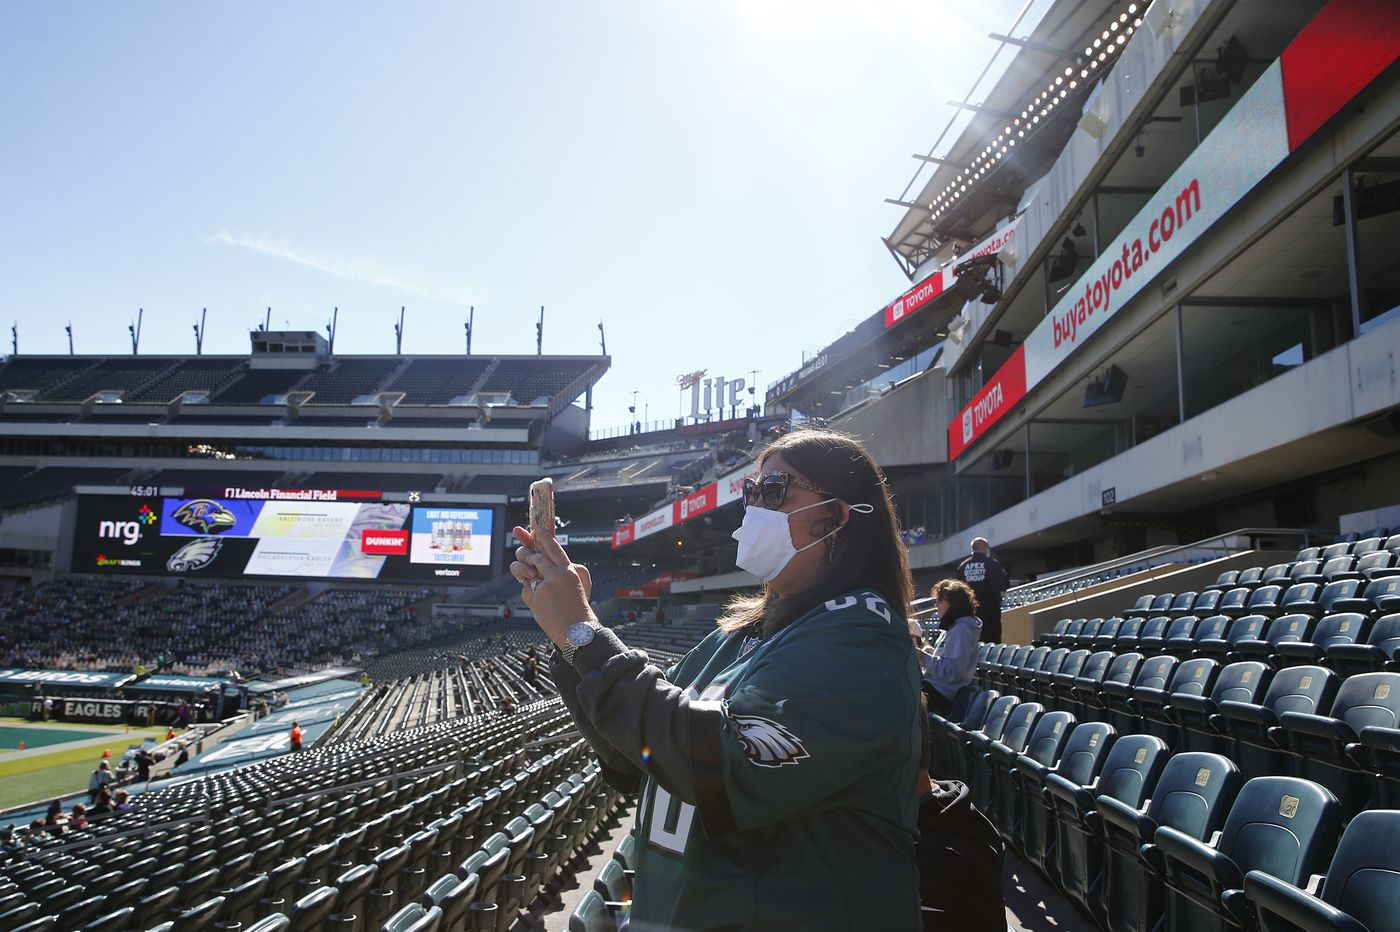 'It's very empty in here': Eagles fans finally return to a very different Linc